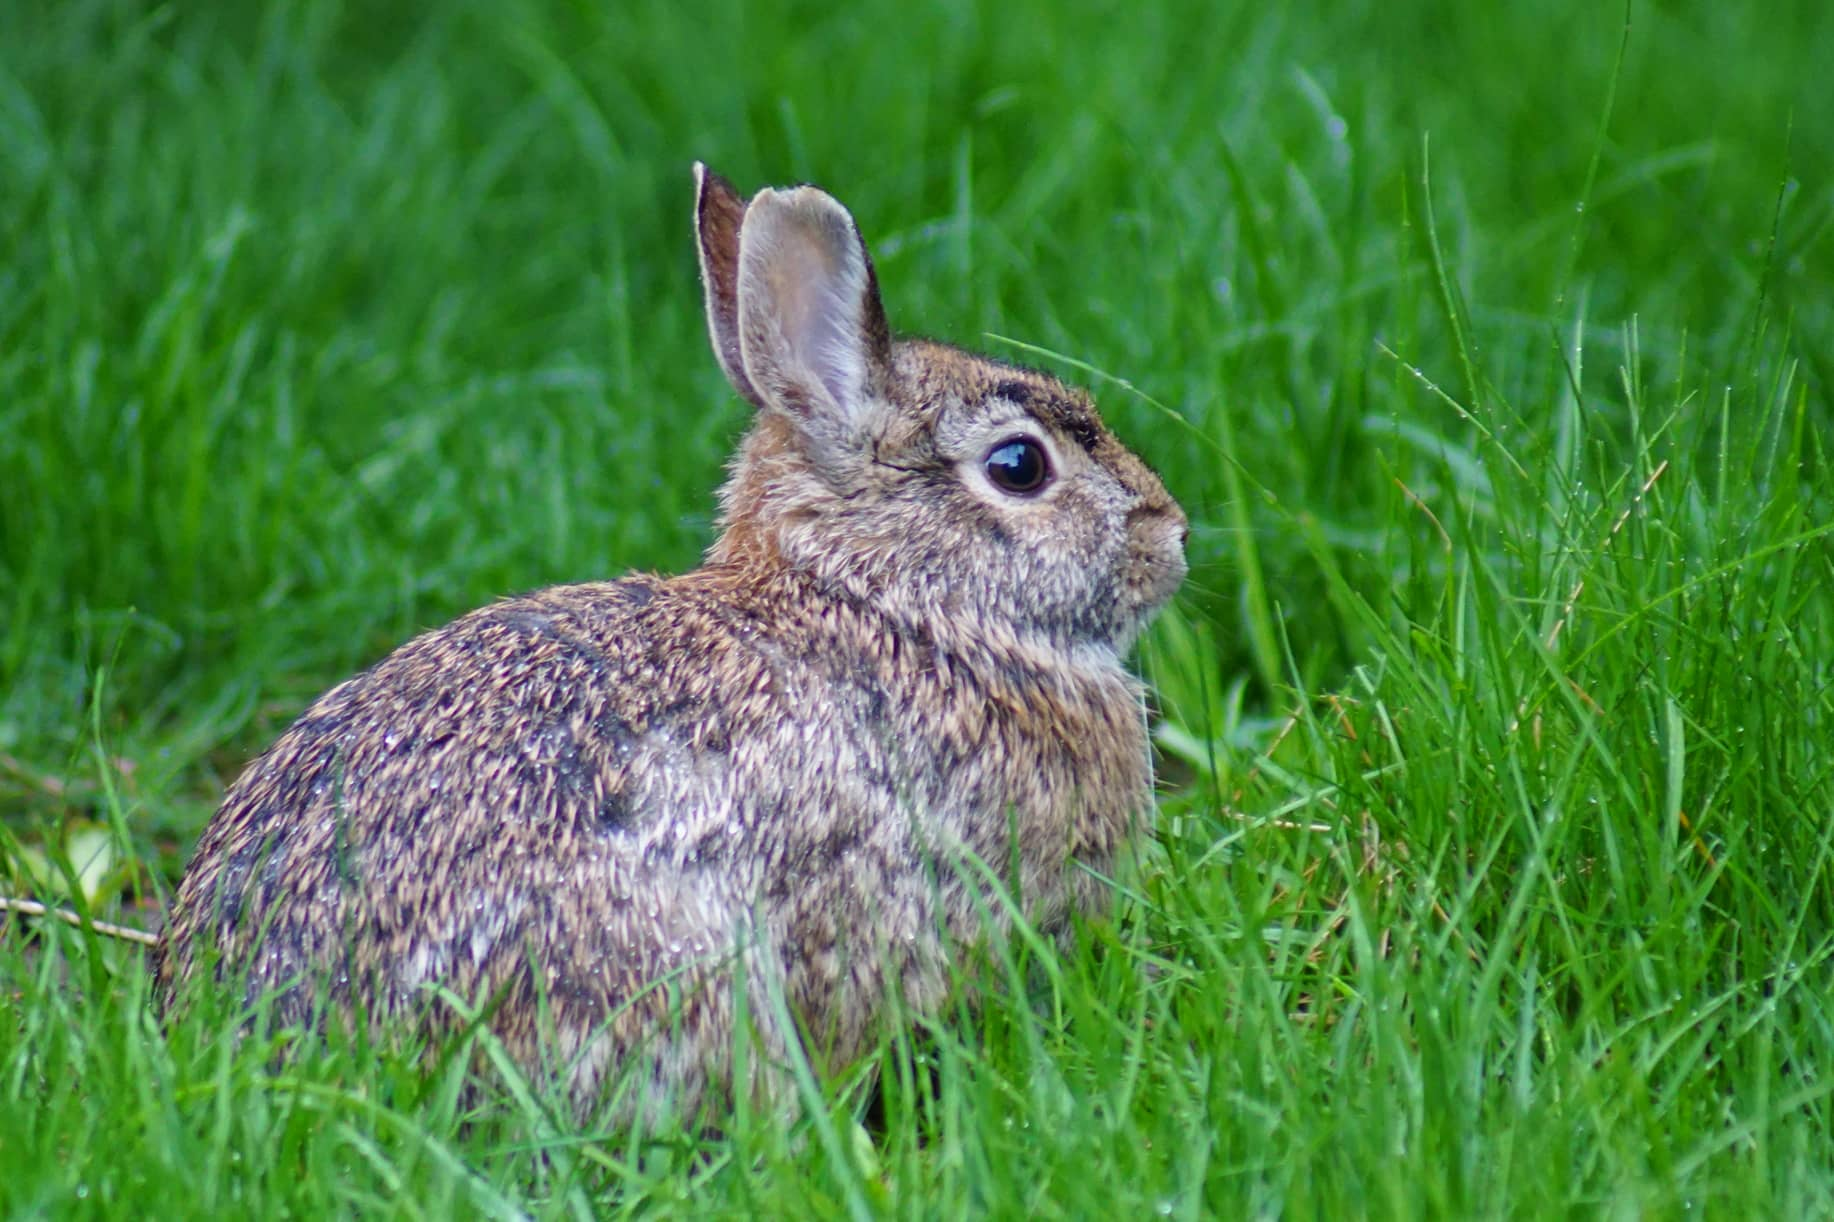 Rabbit in some grass